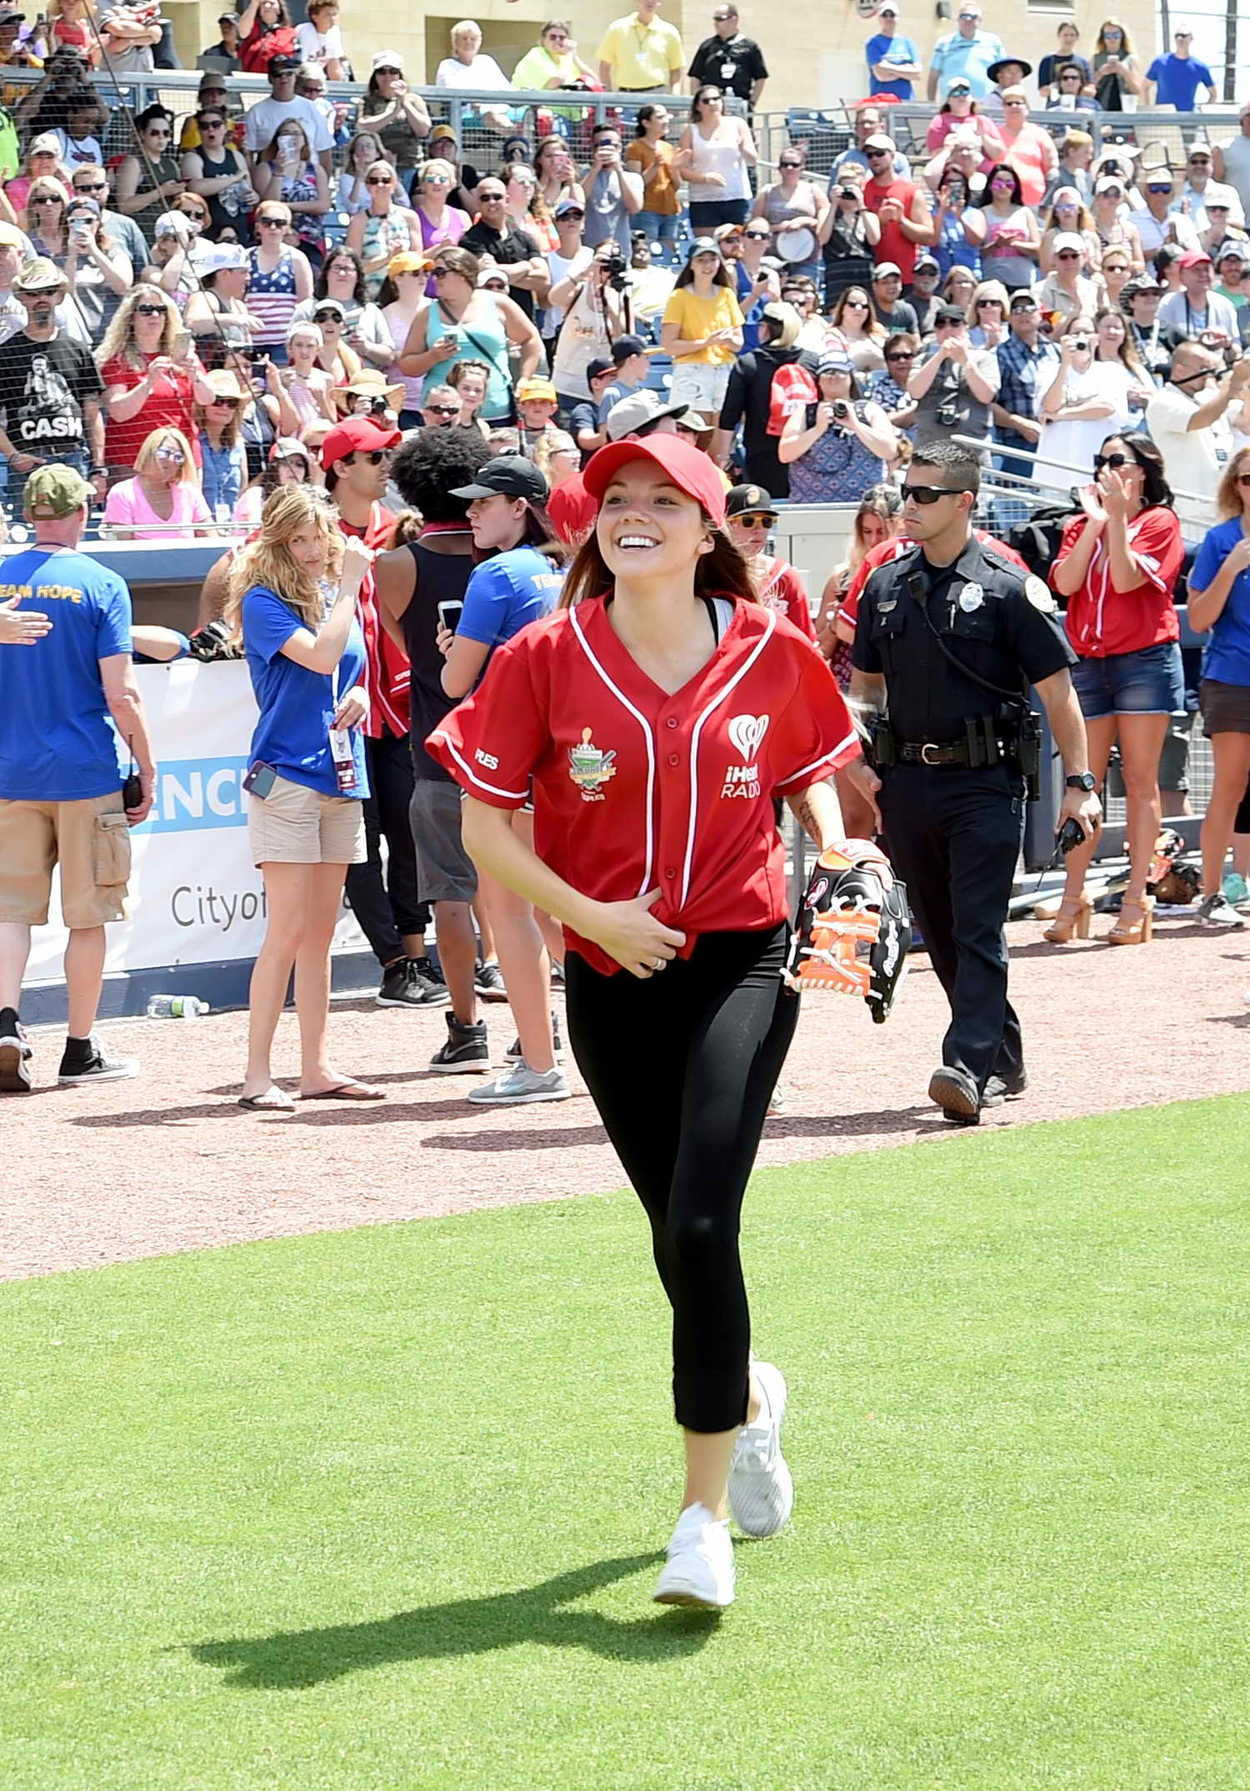 City of Hope Expands 2018 Celebrity Softball Game Rosters ...